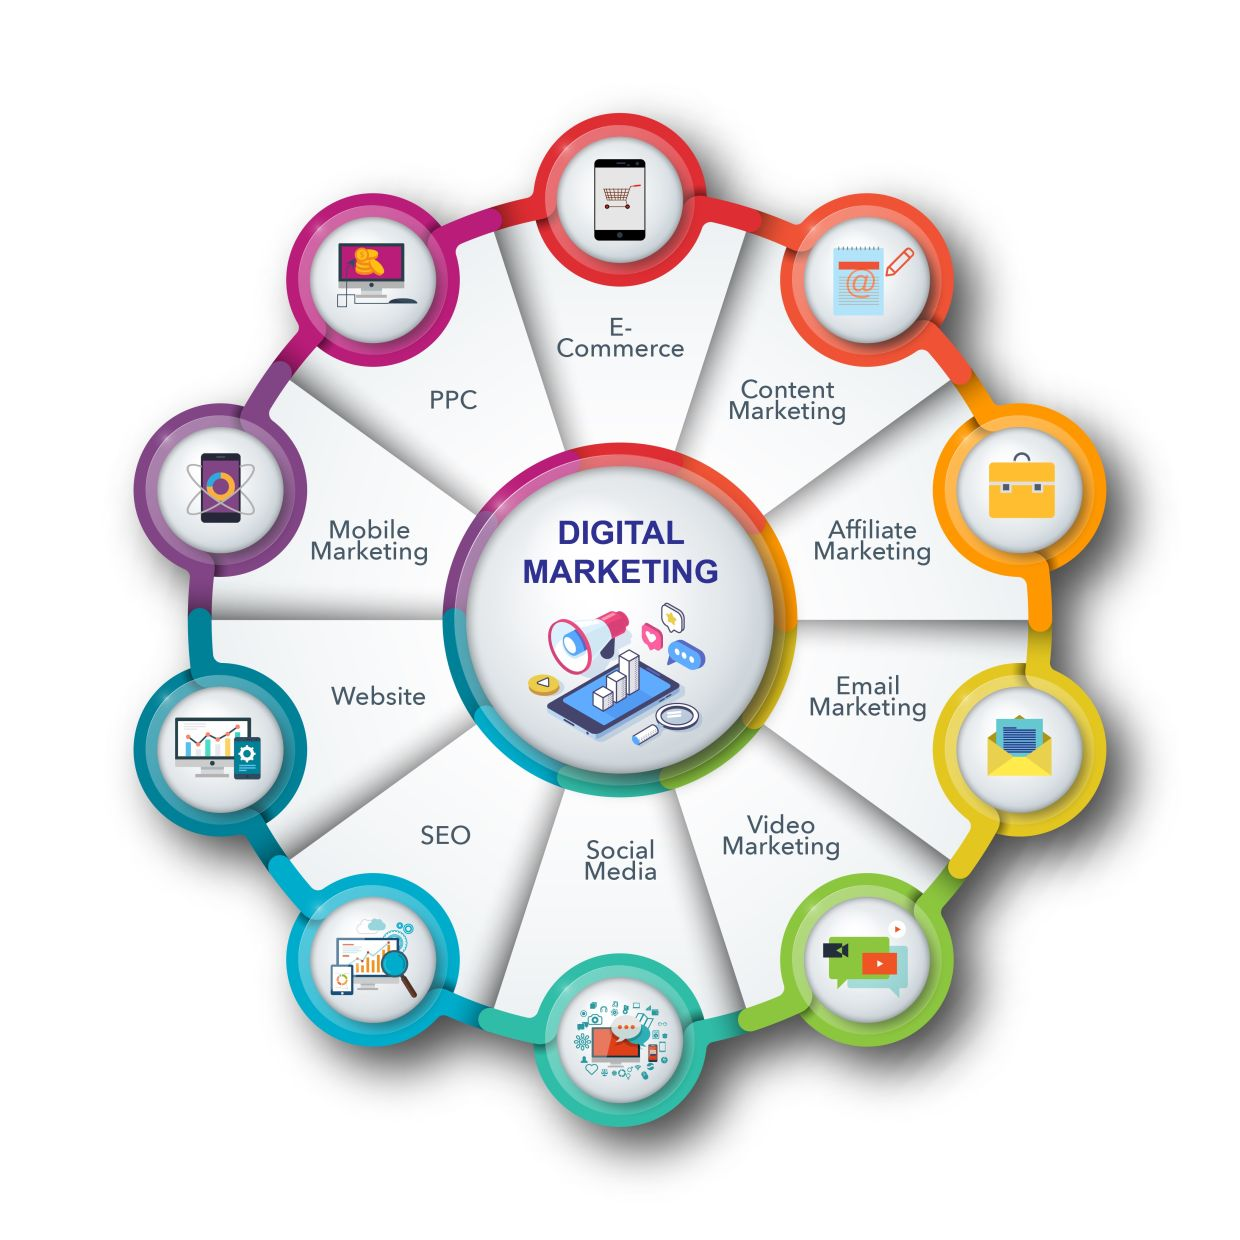 A digital marketing specialism will provide students with knowledge about a broad range of digital marketing technologies and how they are applied in practically infused digitised settings.